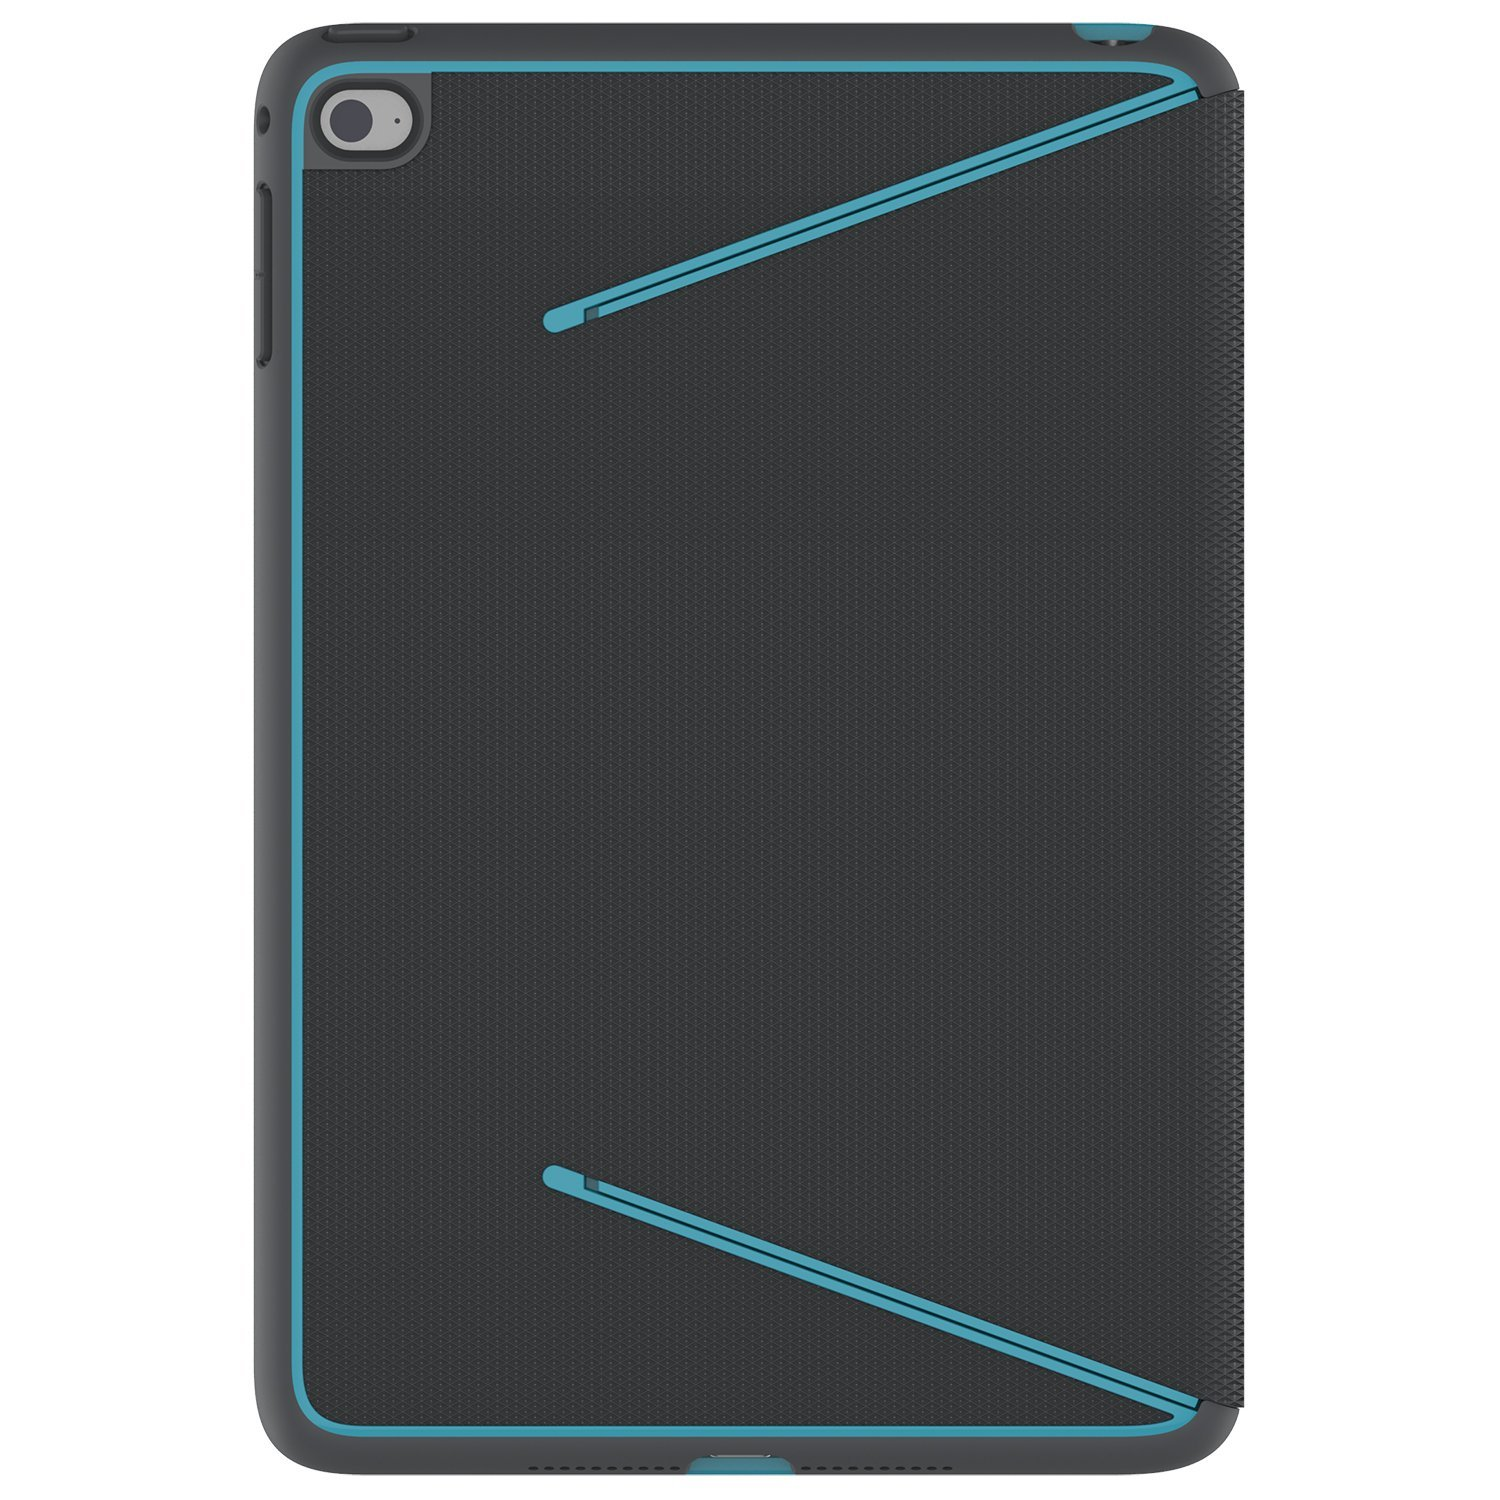 online retailer 7d0d3 f5ad8 Speck Products DuraFolio Case and Stand for iPad Mini 4, Slate Grey ...